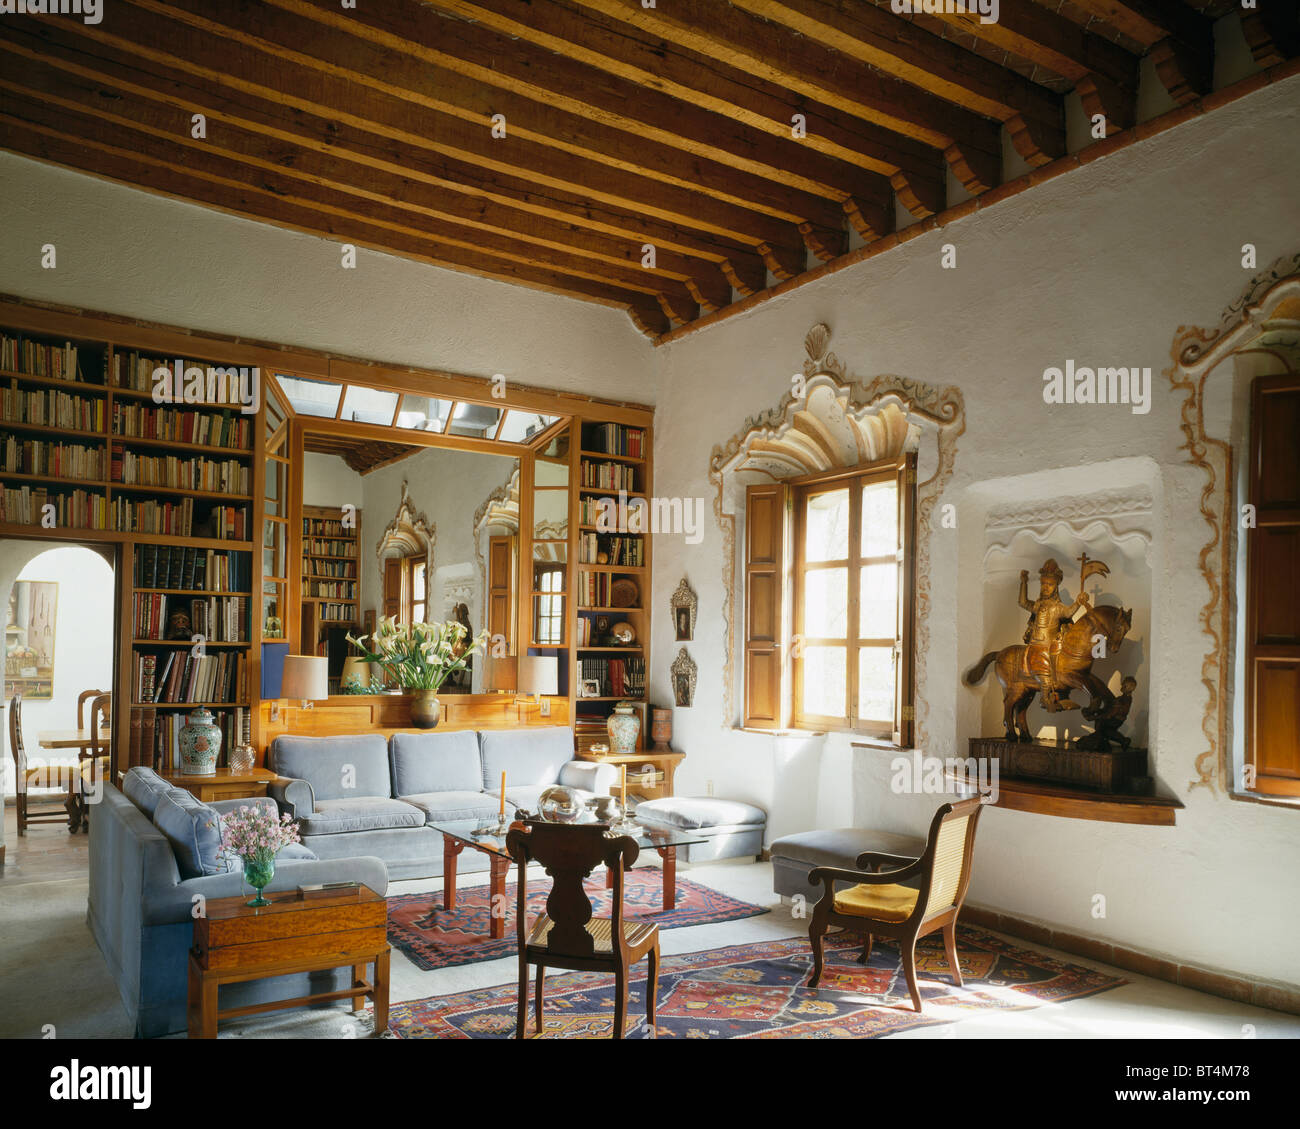 Traditional Living Room Interior Design Pictures: Traditional Living Room With Rococo Window-frame In